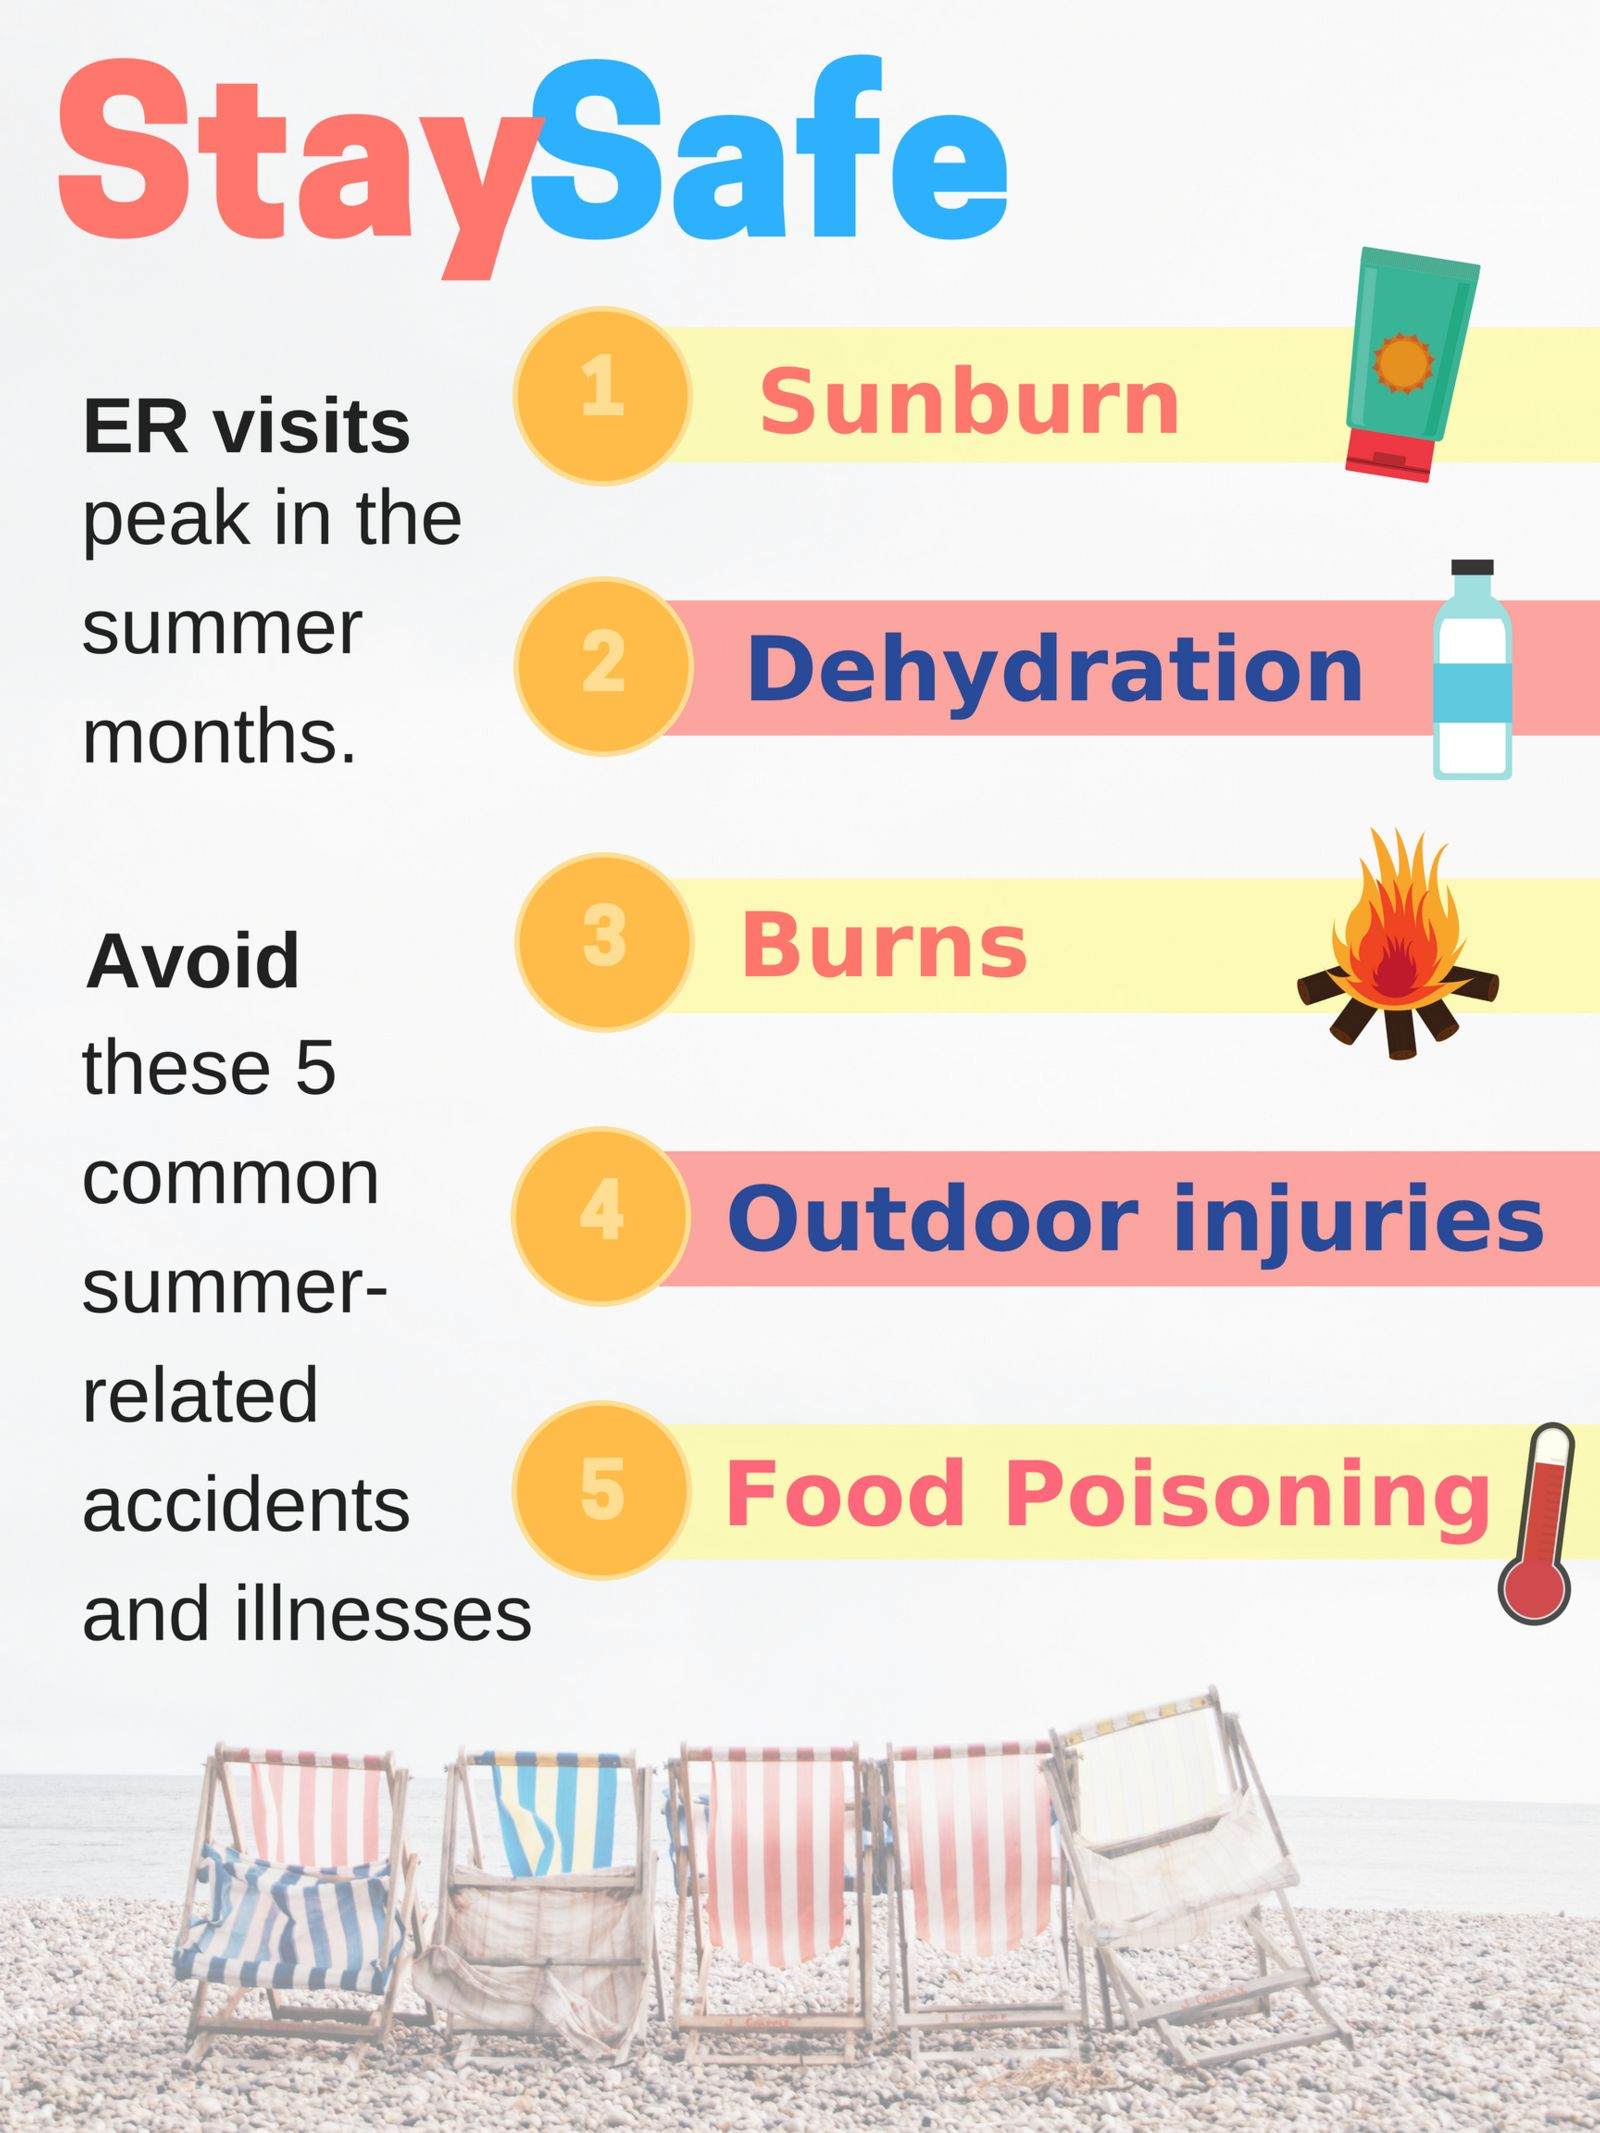 Summer Safety Tips; sunburn dehydration burns outdoor injuries and food poisoning